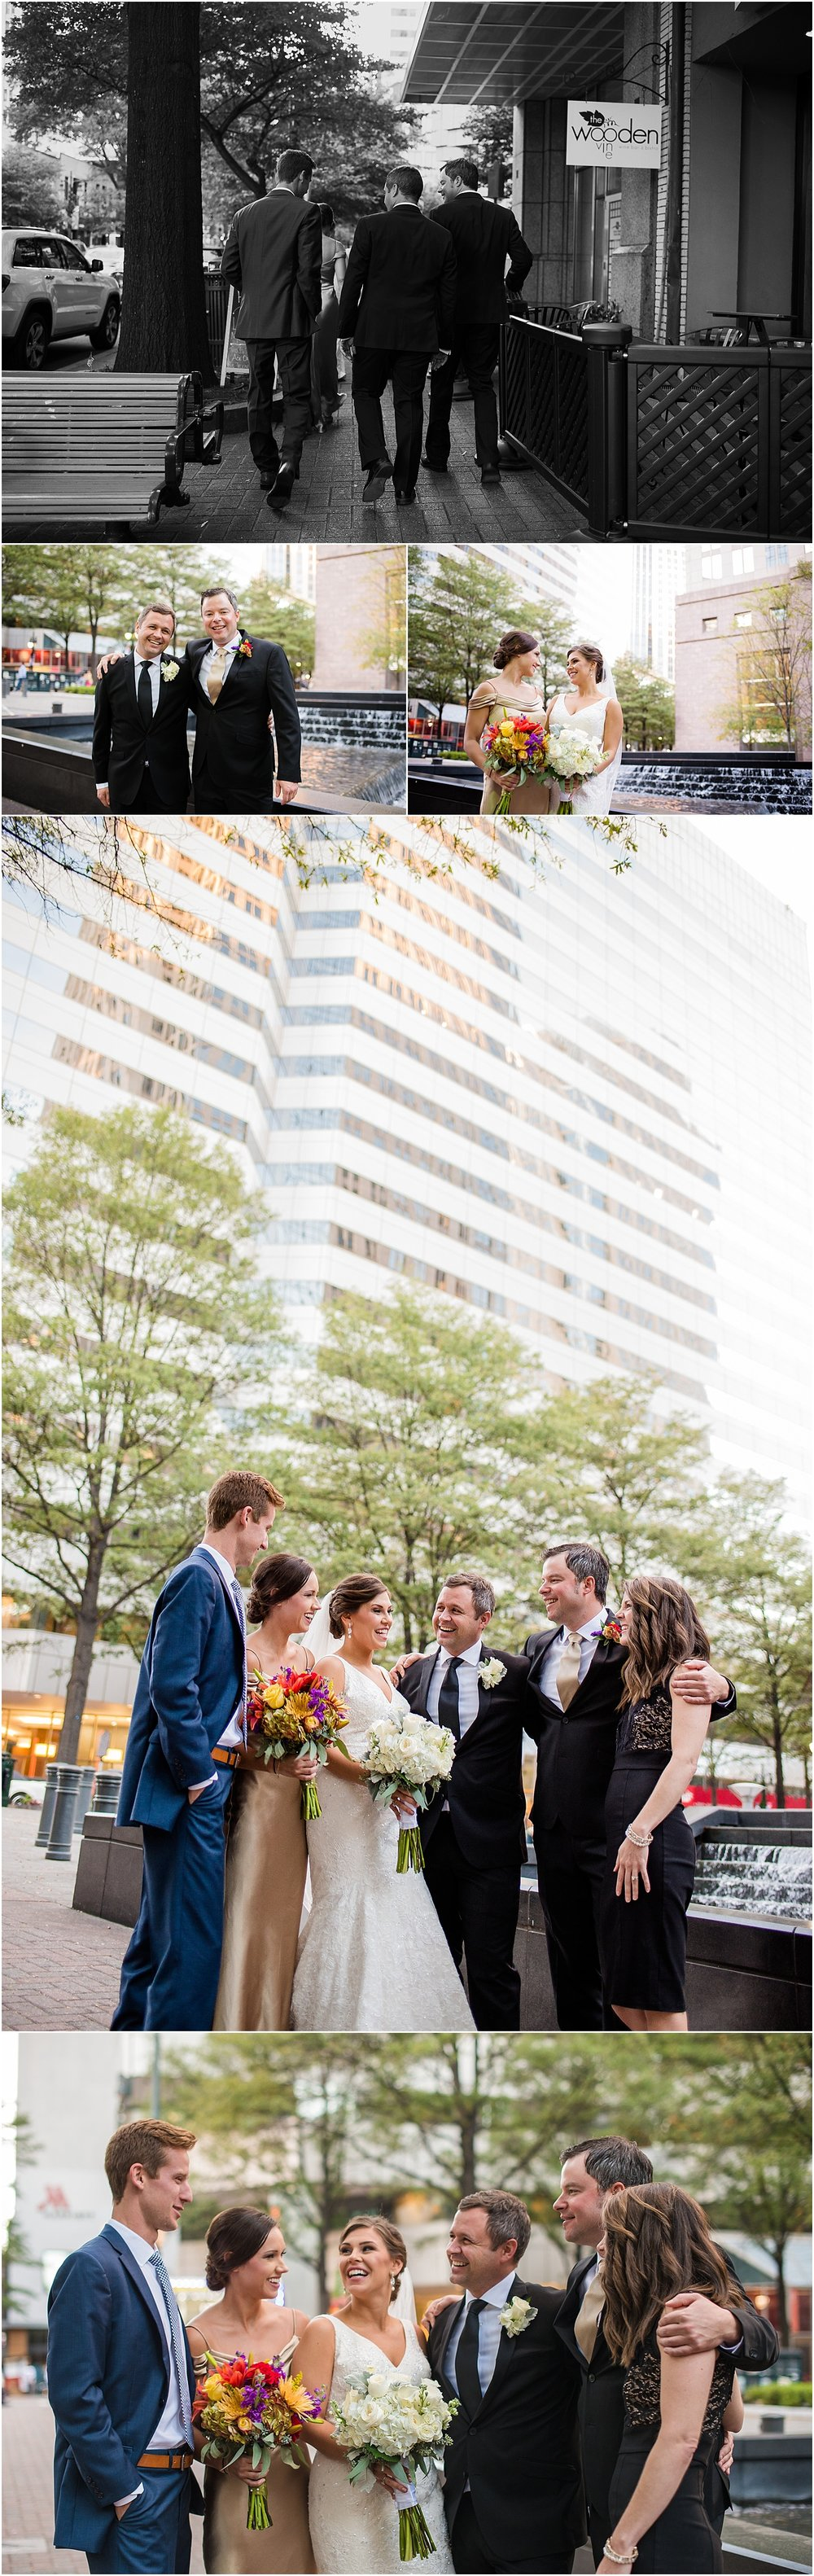 Candid_Wedding_Party_Photos_Bridesmaid_Groomsmen_Uptown_Charlotte_Gold_dresses